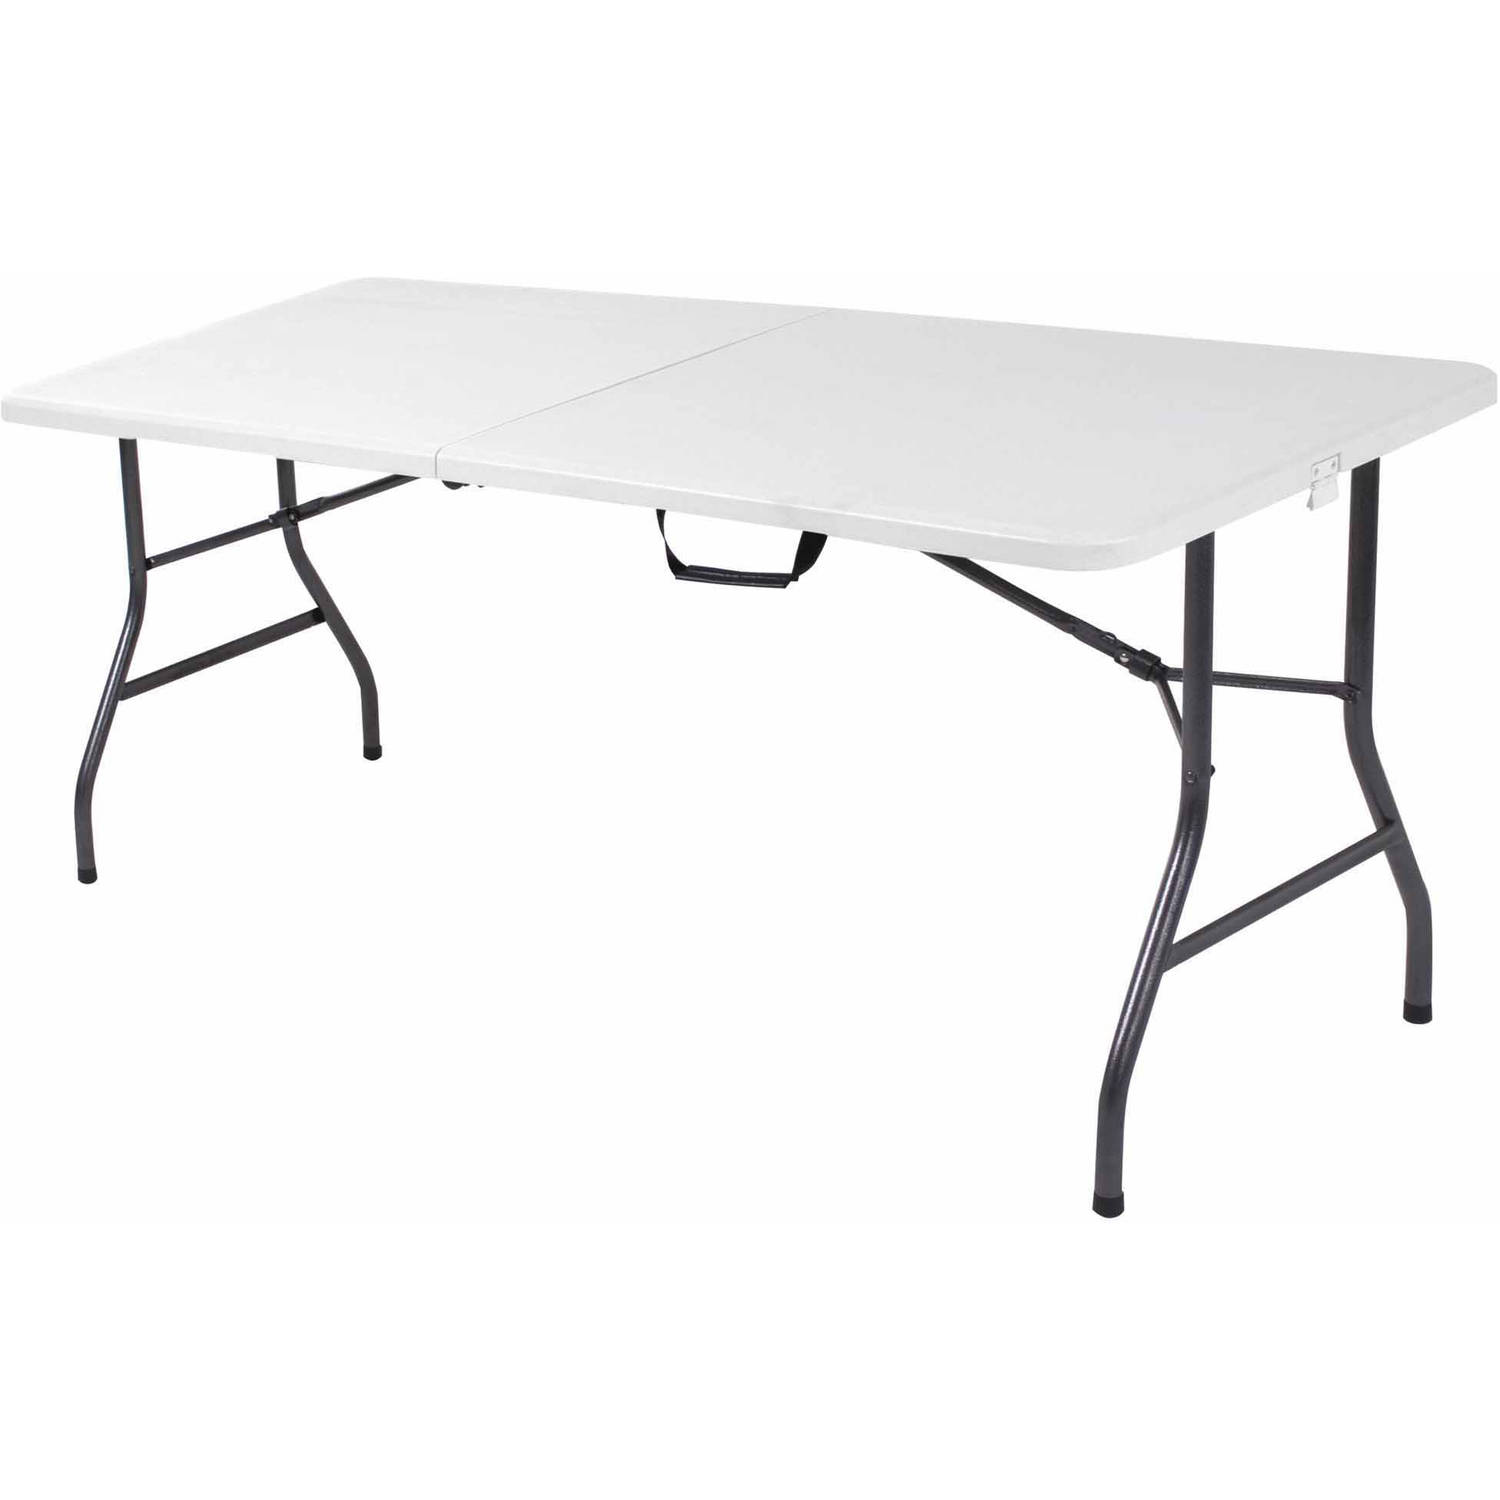 Collection folding table and chairs folding tables xtpulqs